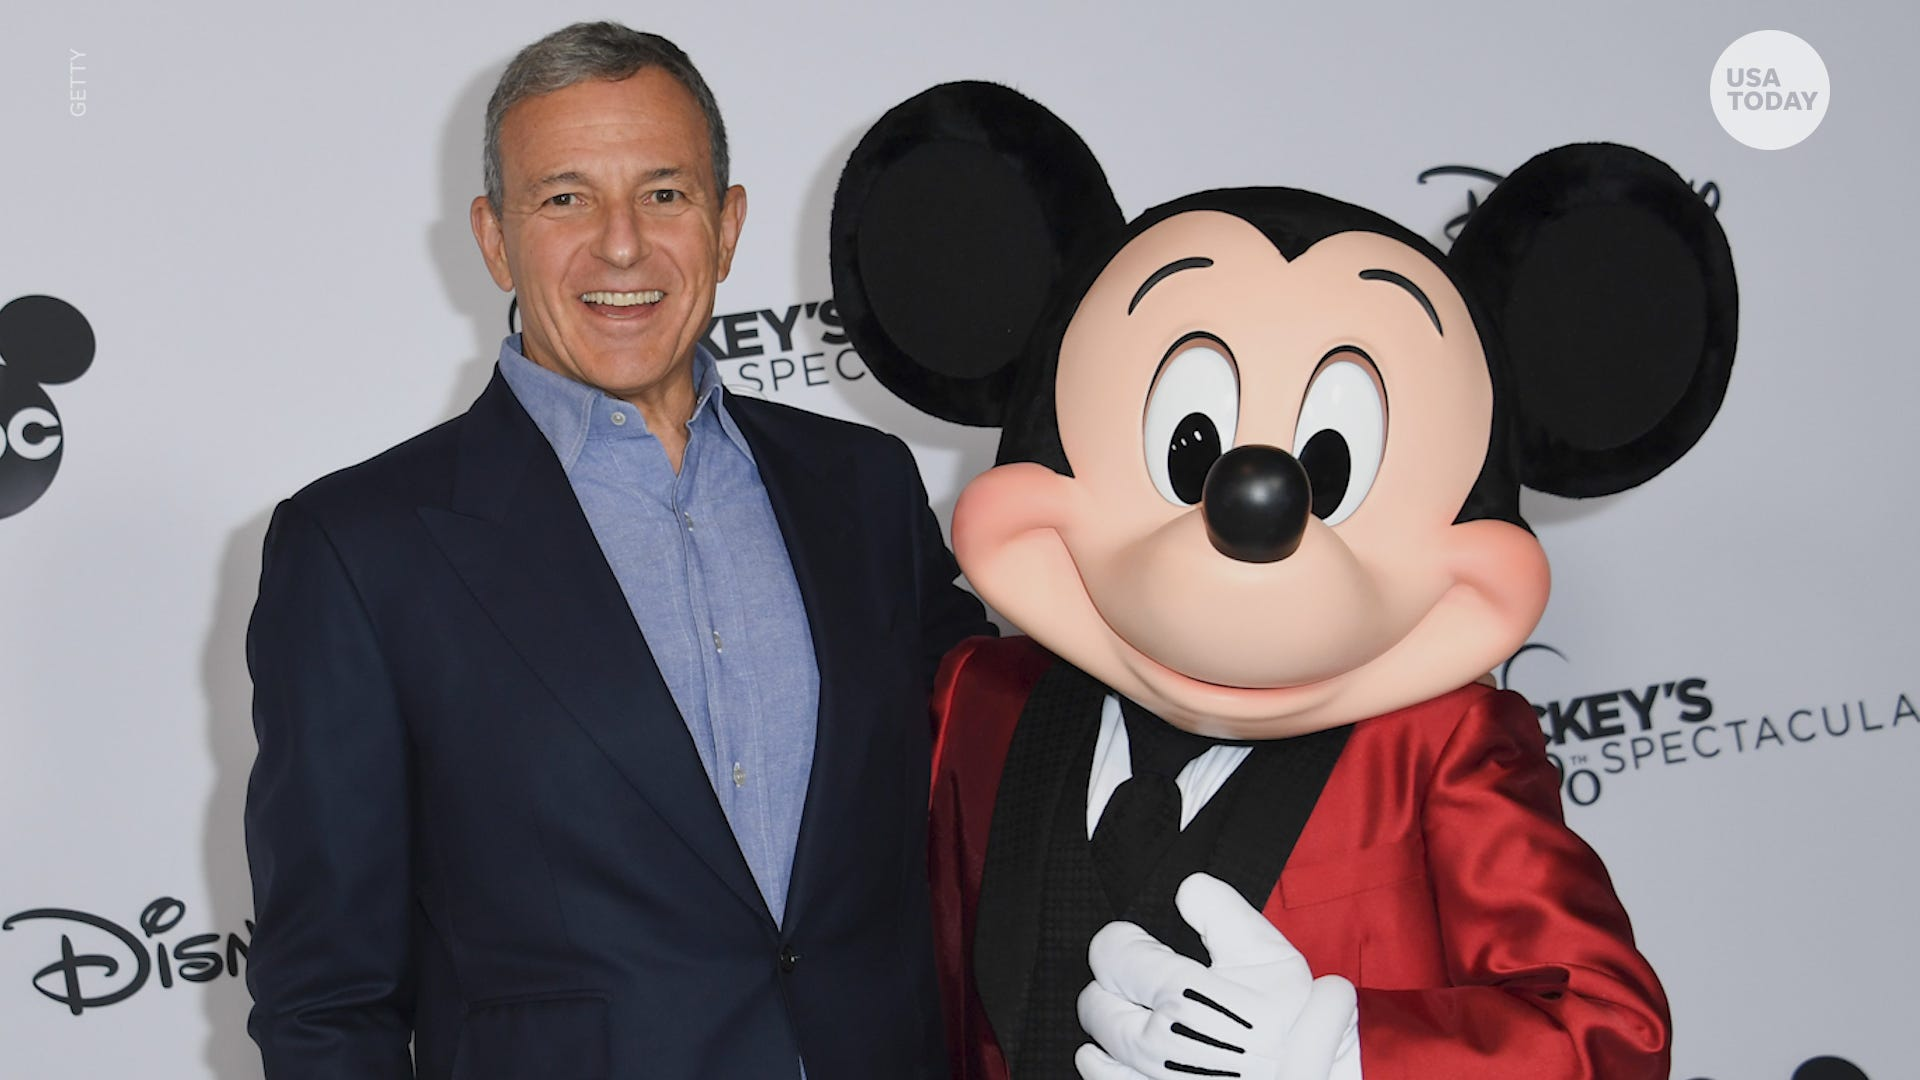 Walt Disney CEO Bob Iger Steps Down